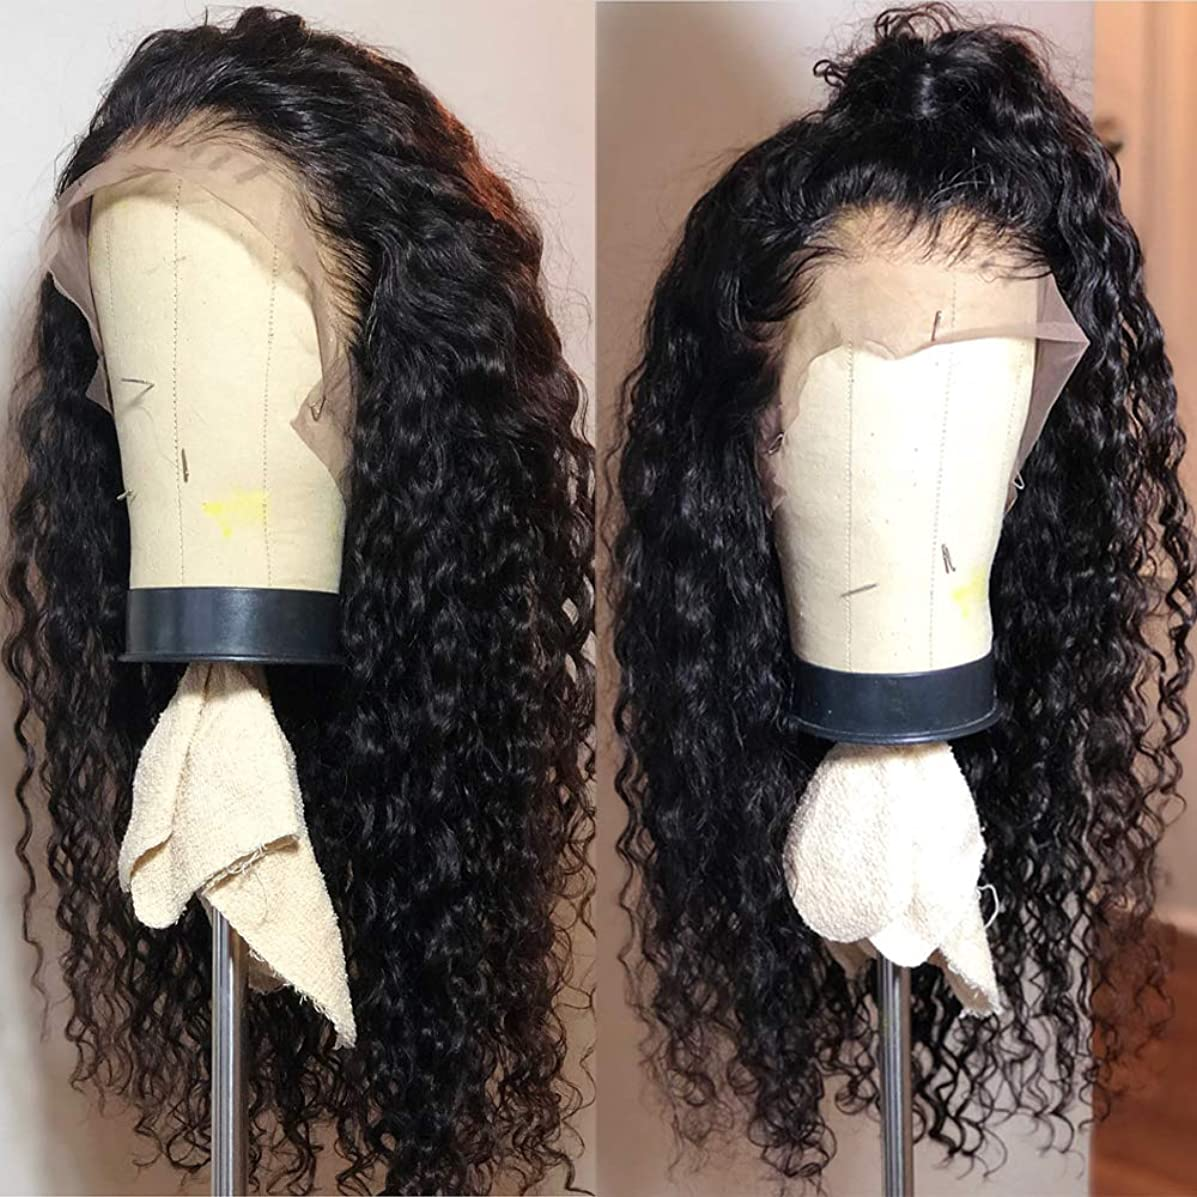 Fureya Long Loose Curly Glueless Lace Front Wigs for Women Heat Resistant Fiber Synthetic Hair with Baby Hair 24 inch